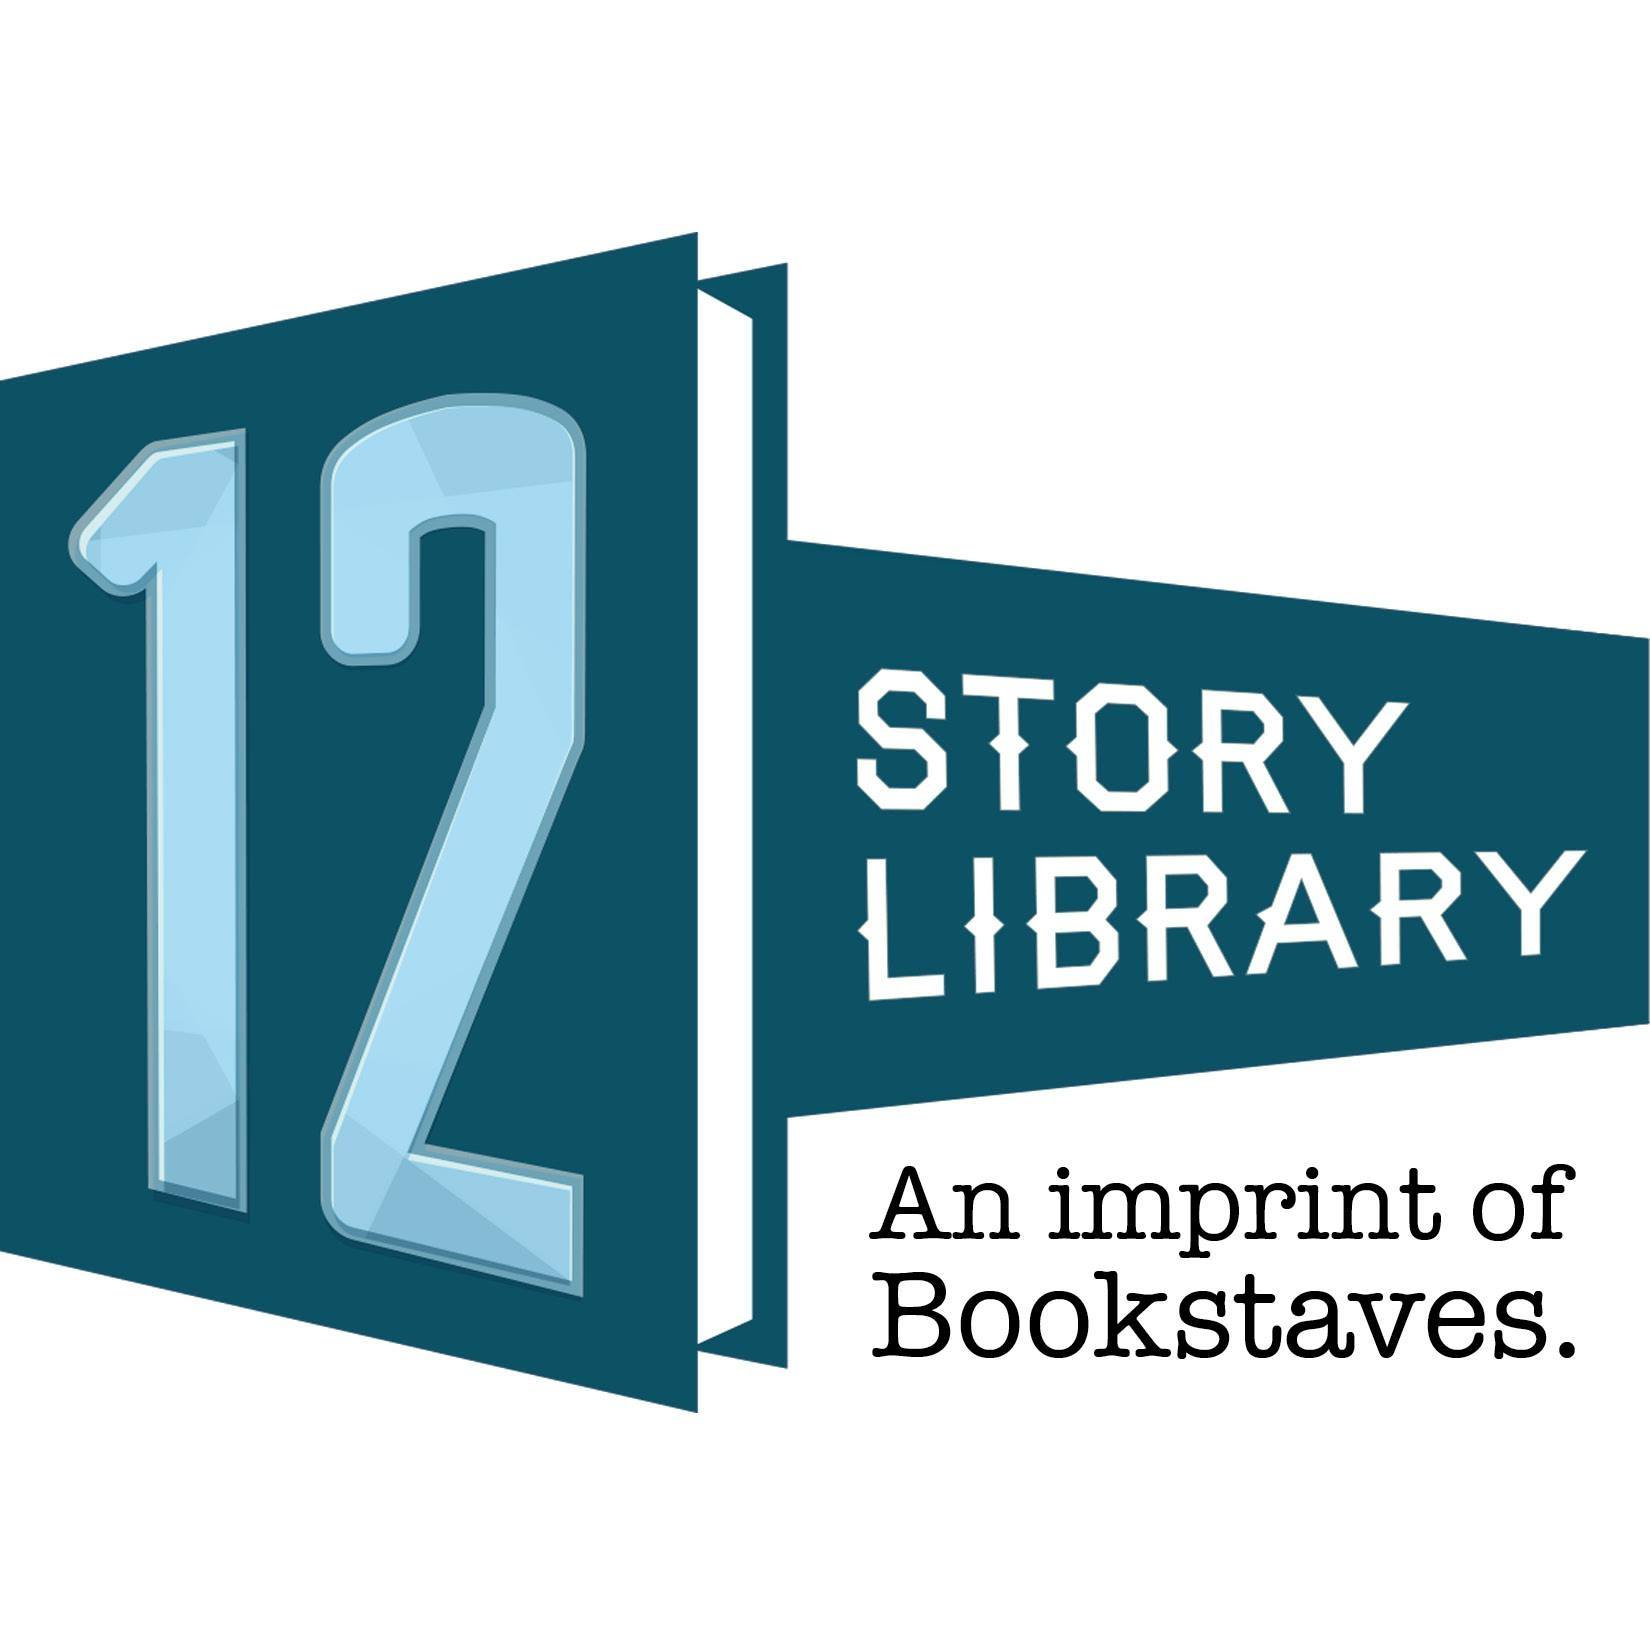 12 Story Library logo